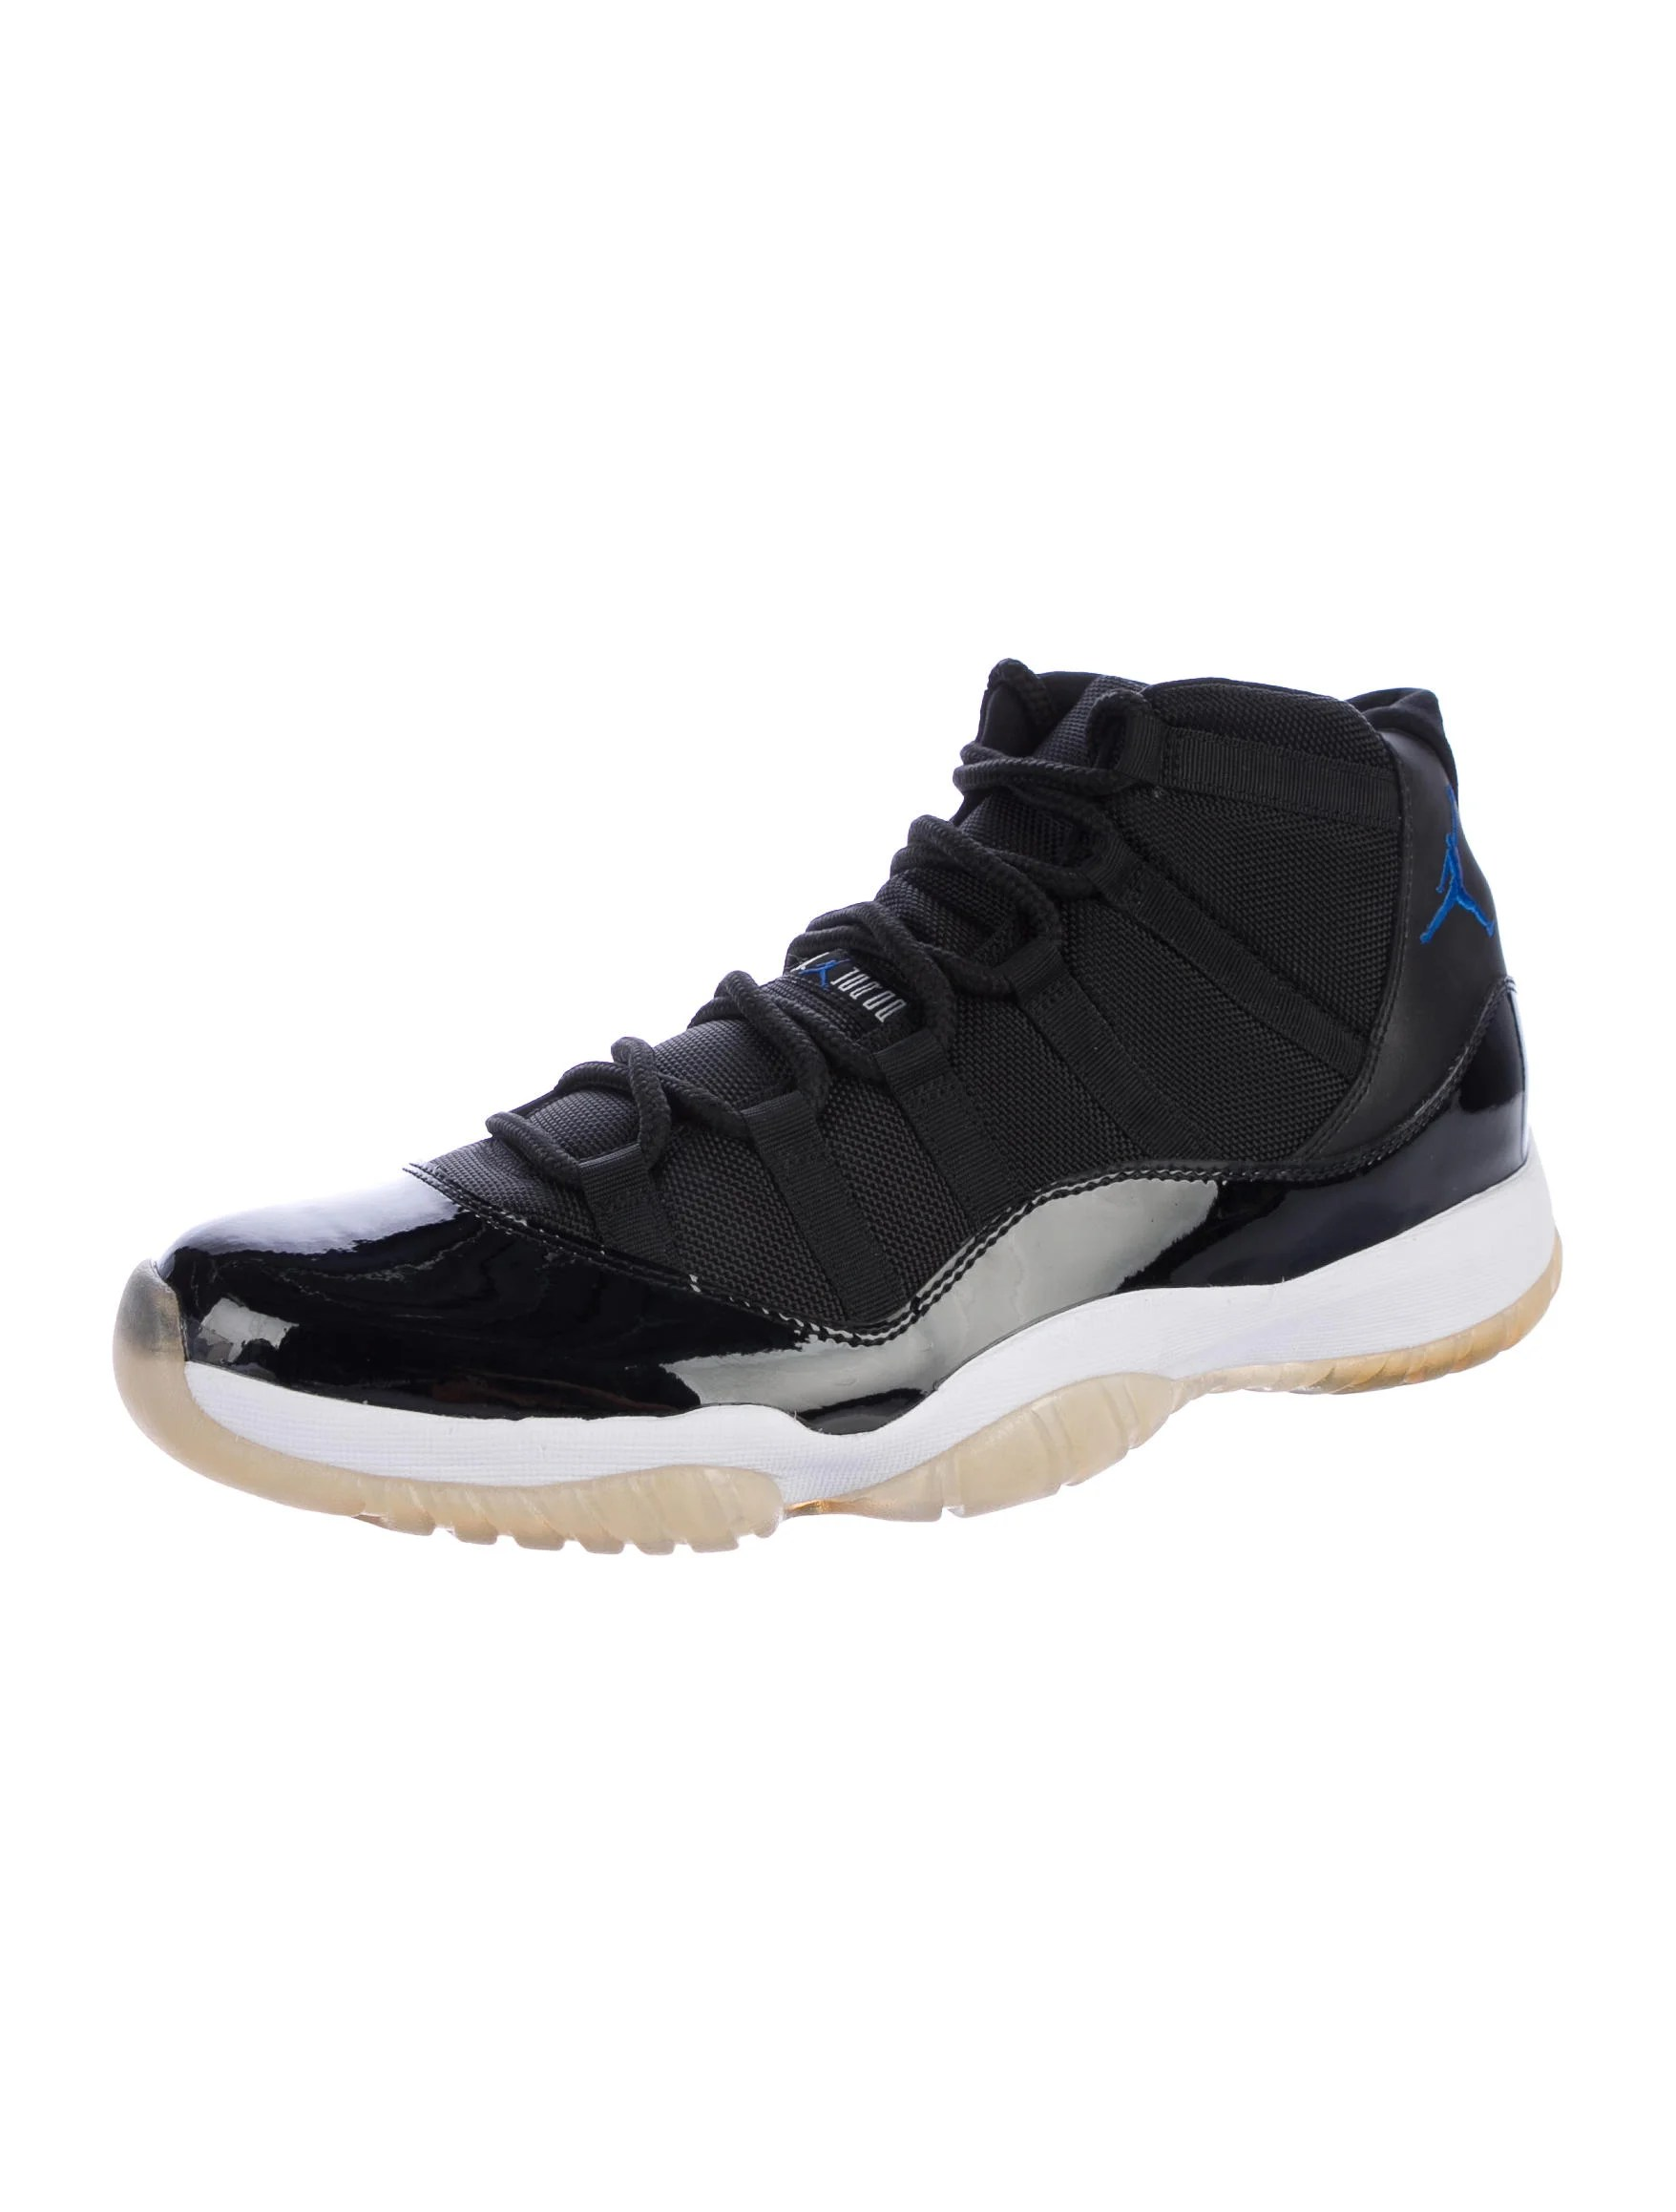 5f343500239f Air Jordan Jumpman Team